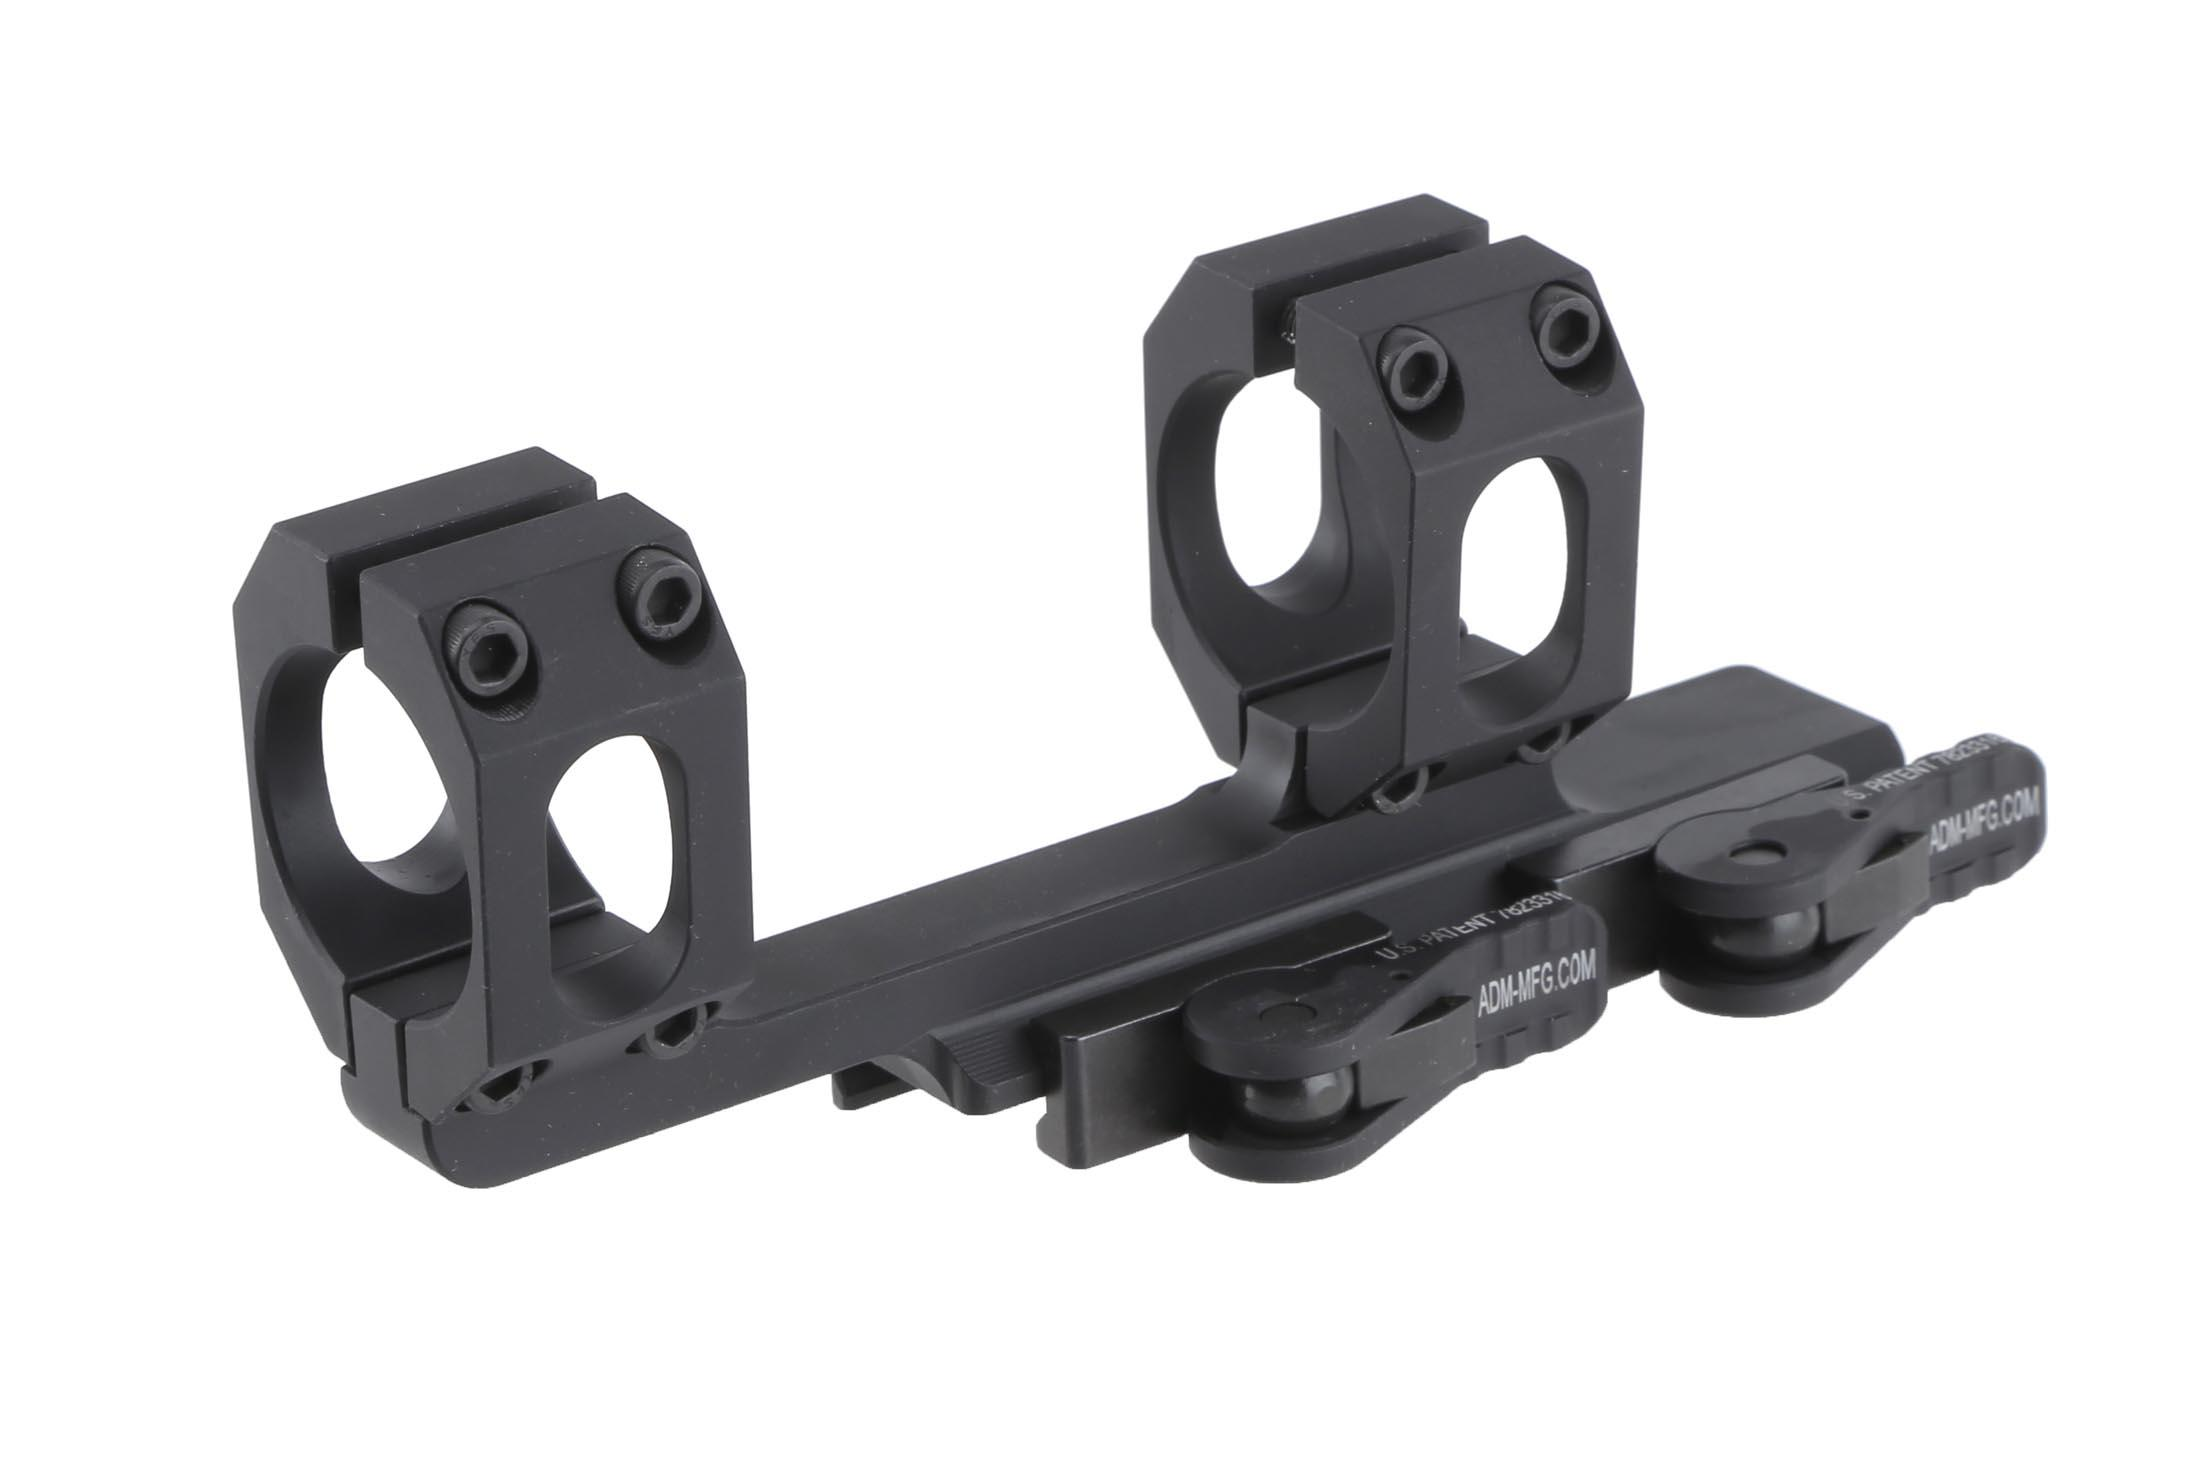 The American Defense Recon Mount 30 features the QD auto lock lever system